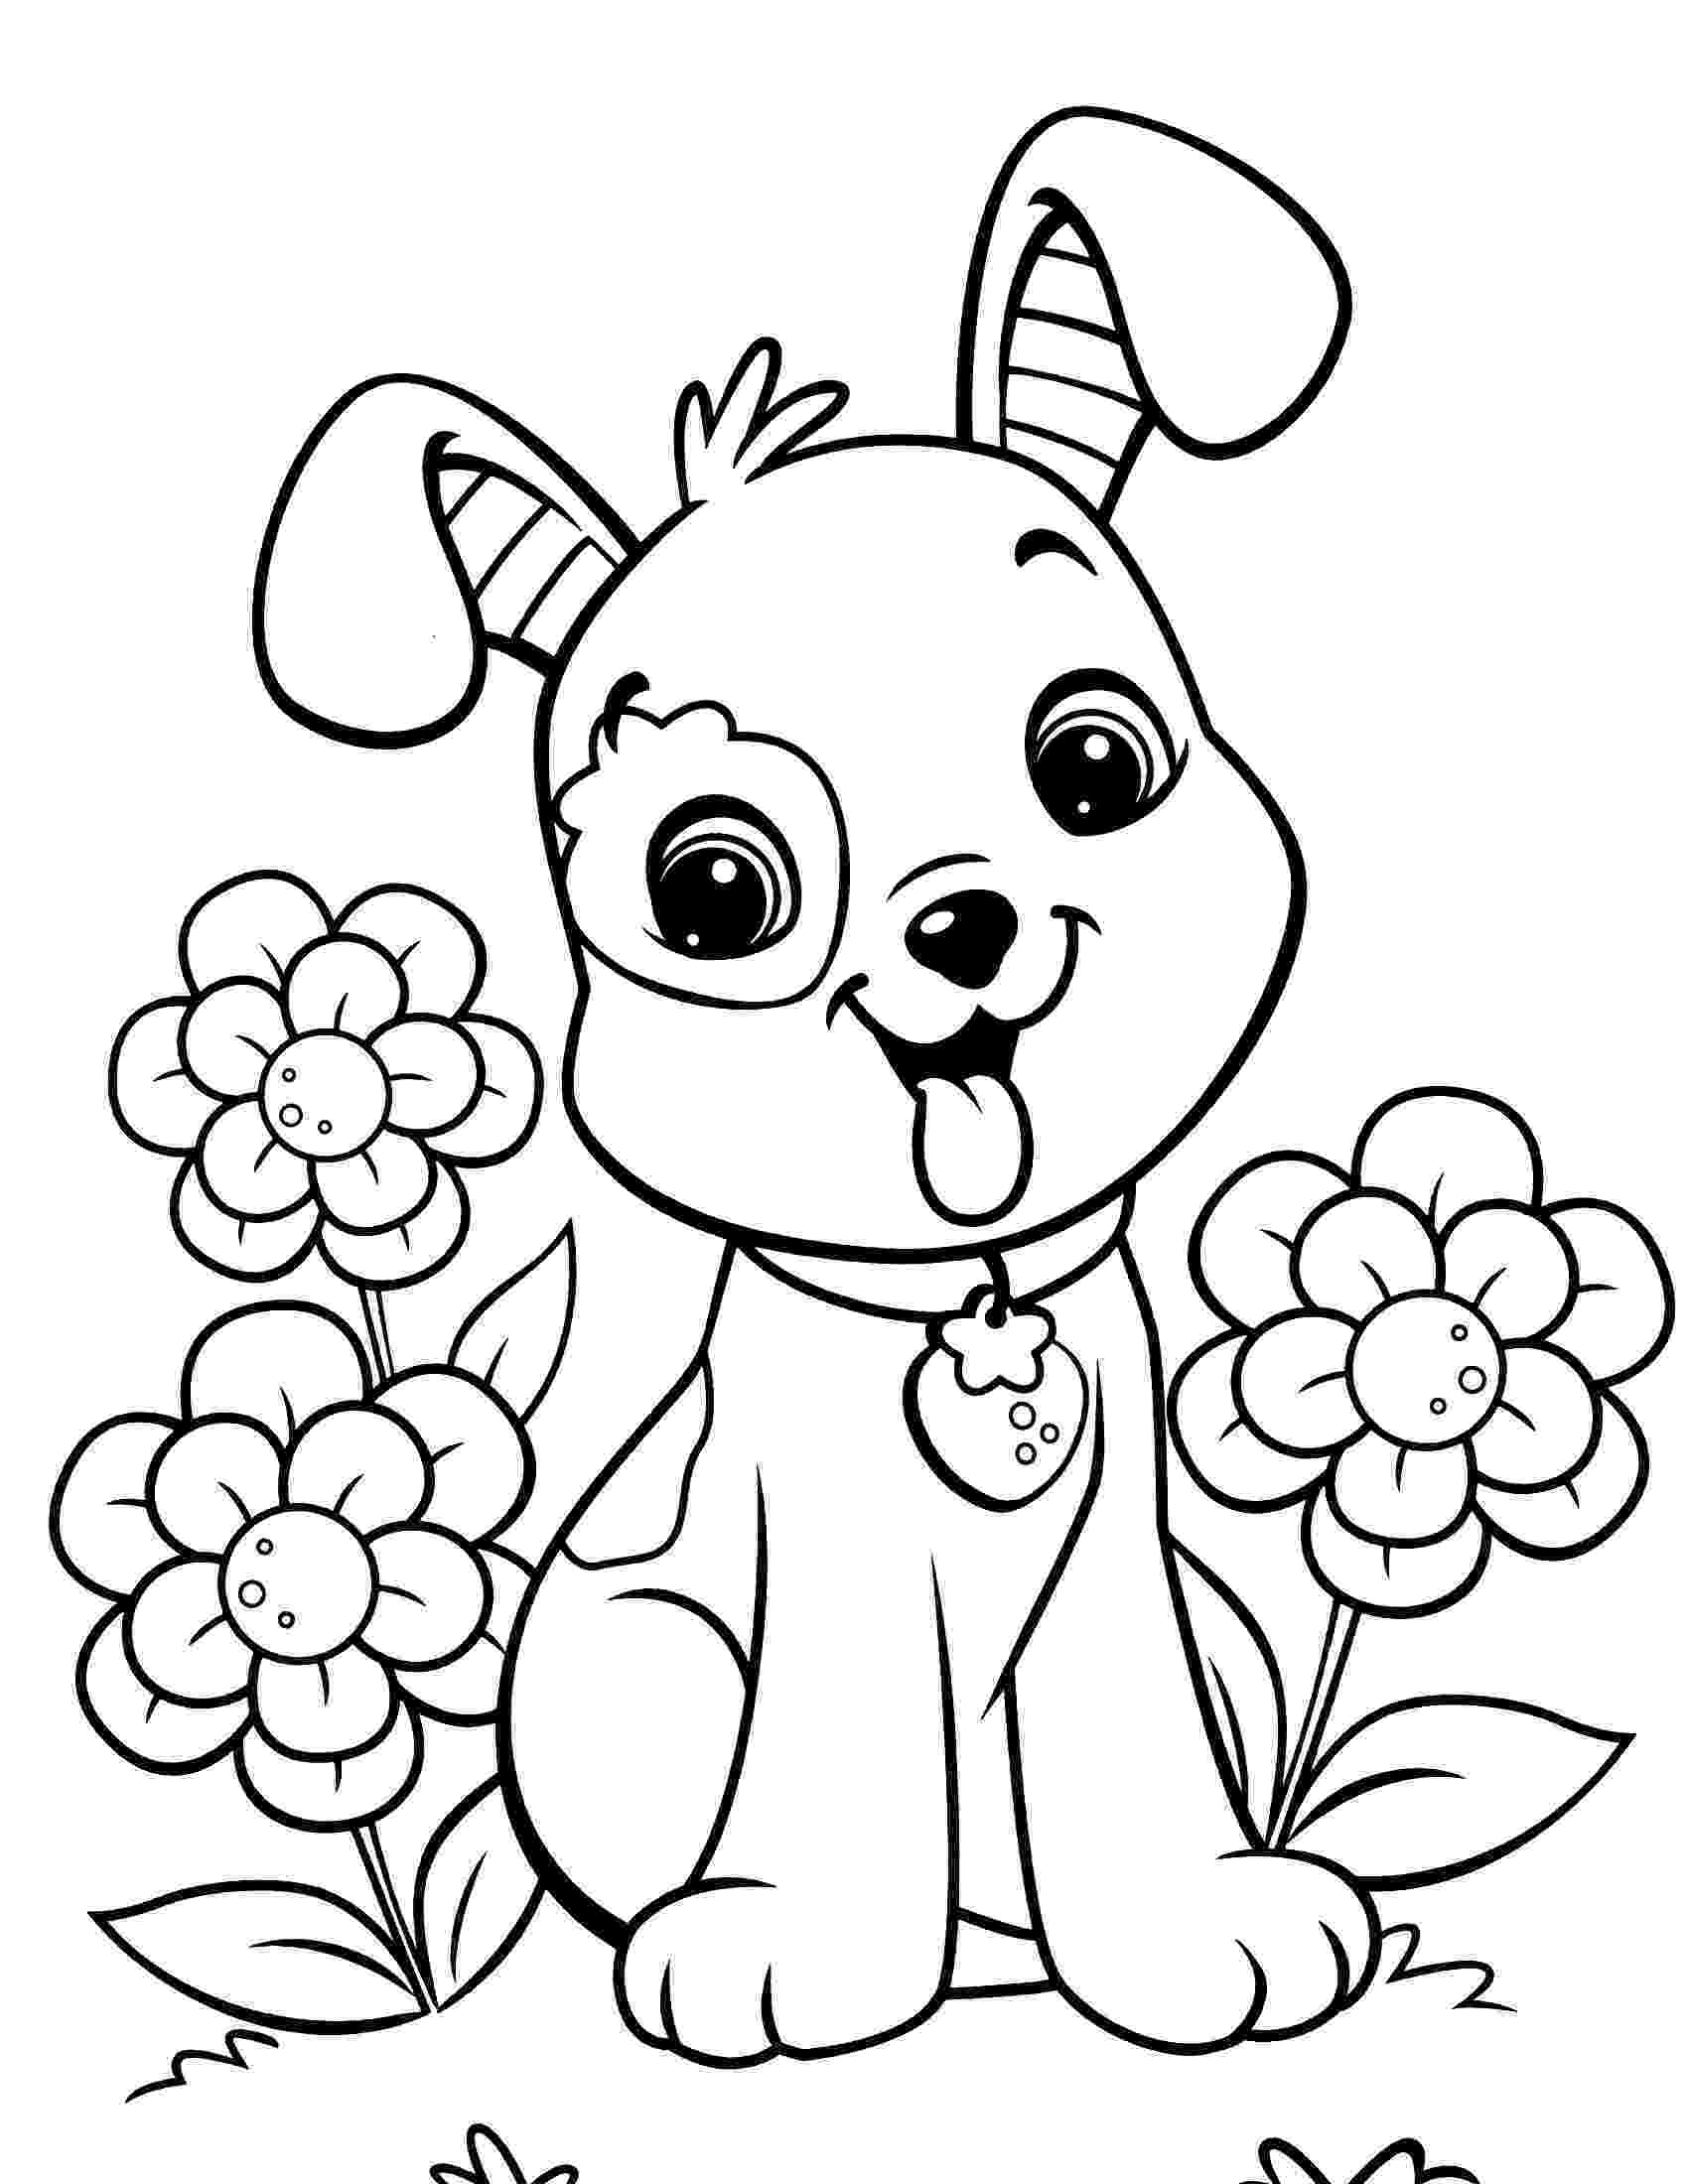 cute coloring pages to print coloring pages cute and easy coloring pages free and cute to coloring print pages